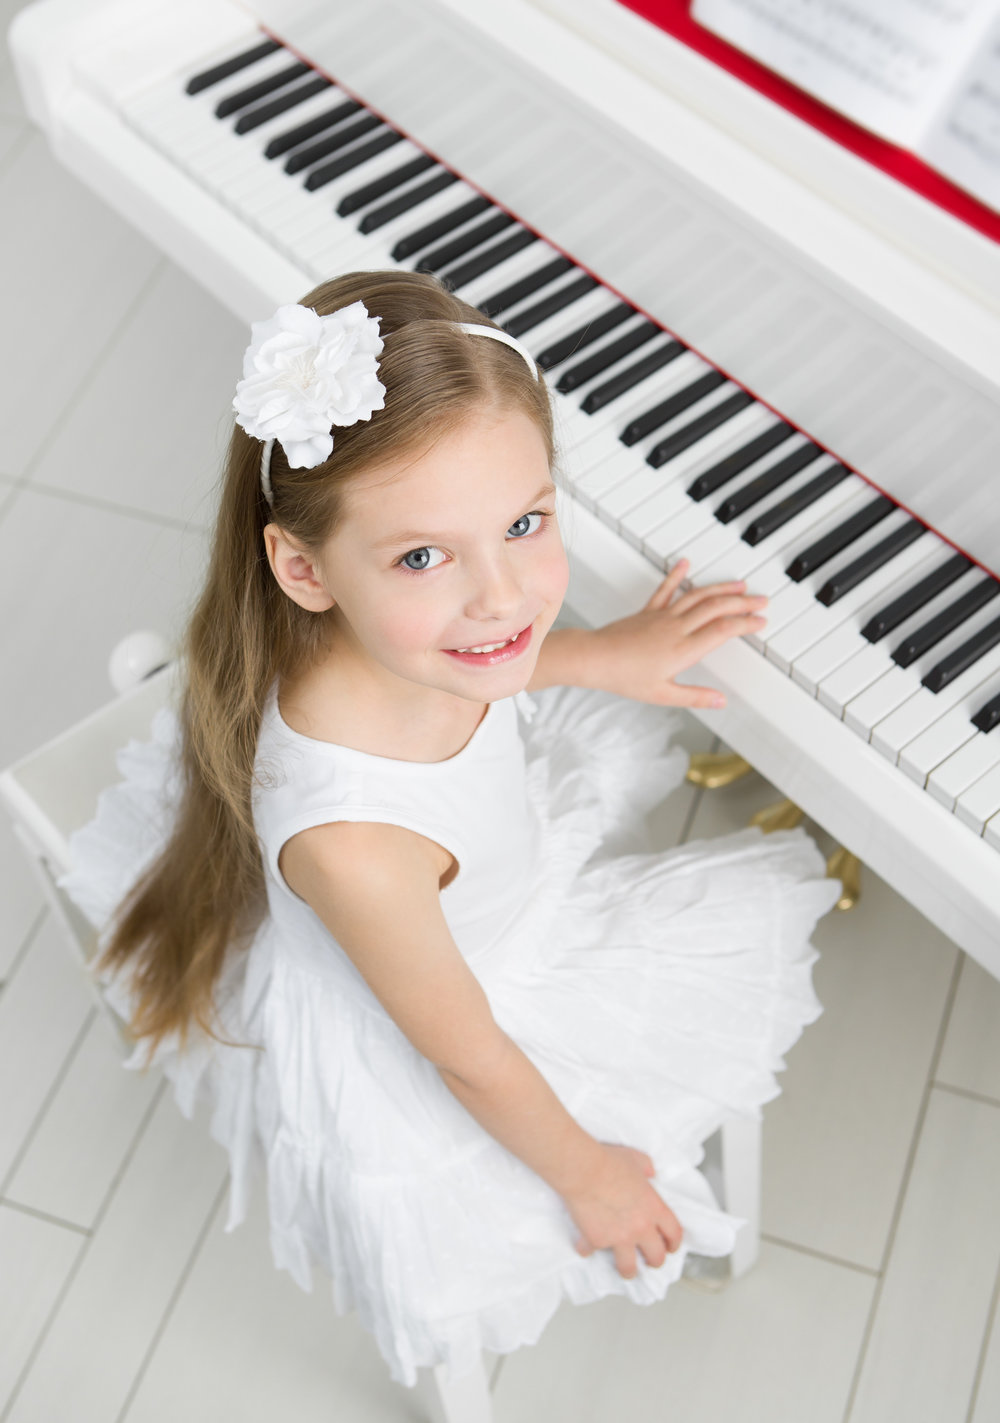 photodune-8094183-top-view-of-little-musician-in-white-dress-playing-piano-l.jpg